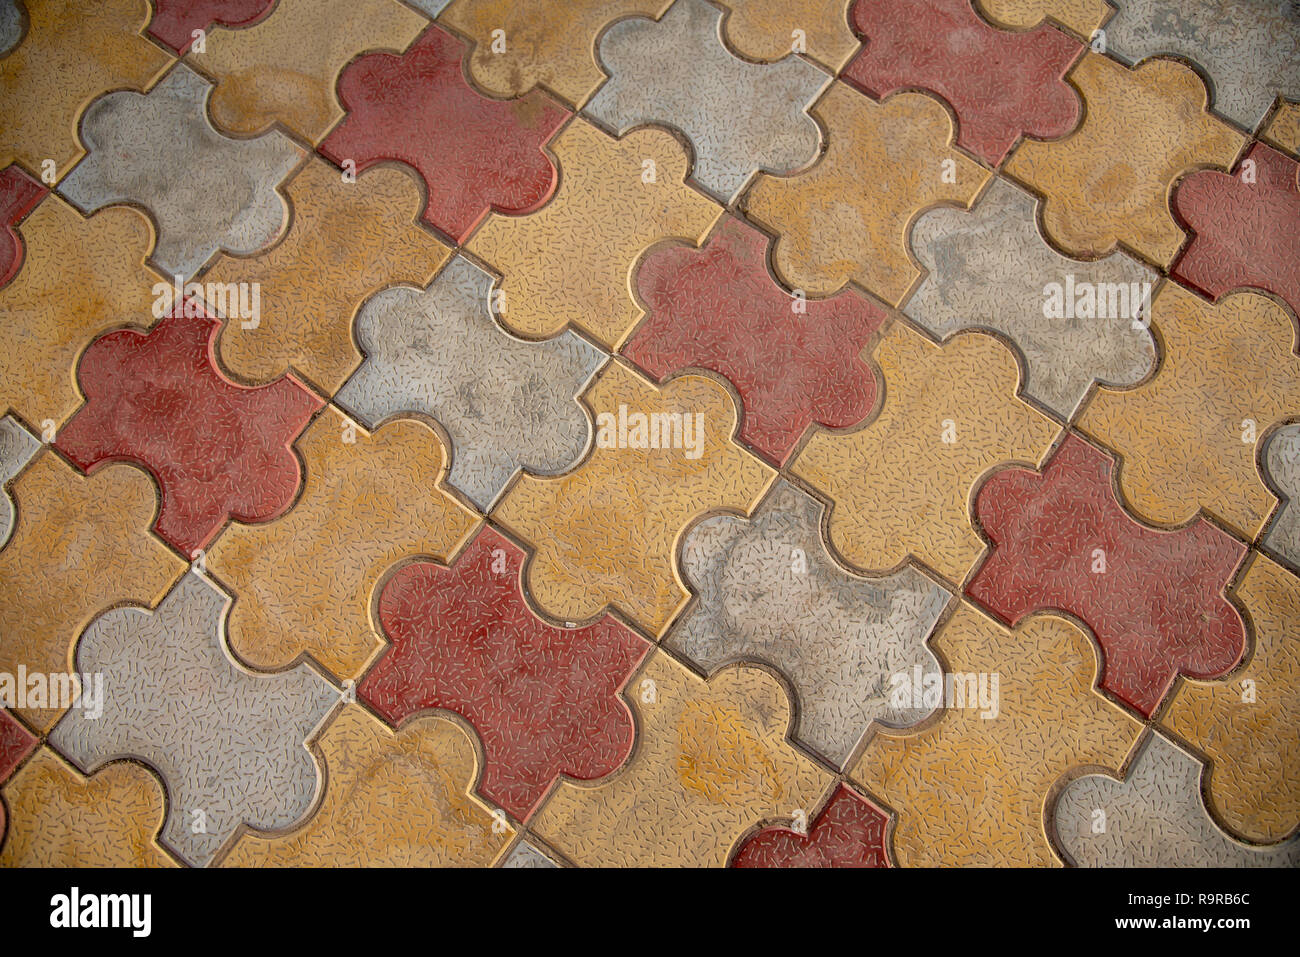 https www alamy com jigsaw floor tiles each vibrant floor tile fitting together like a puzzle piece oxford shape image229780388 html